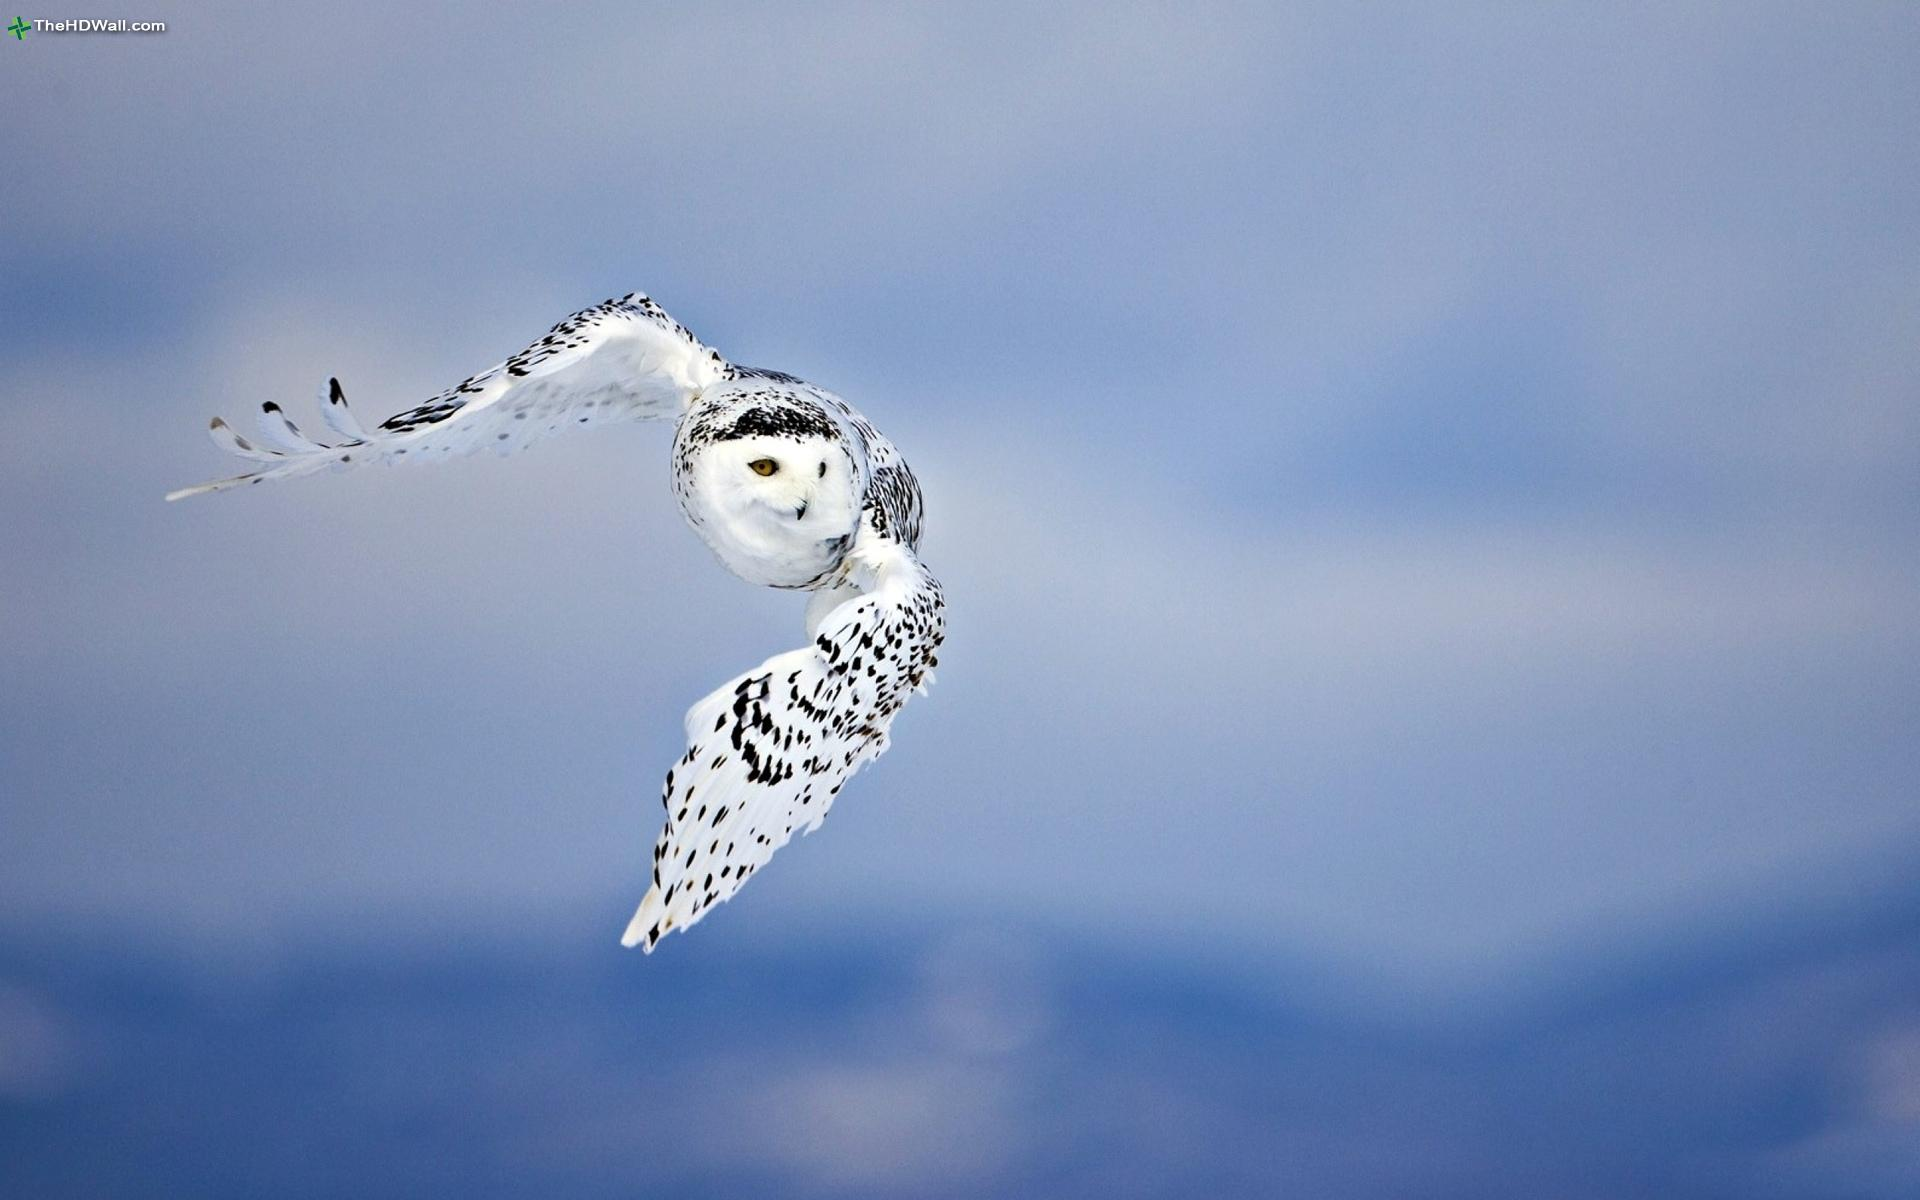 Animals-Owls-Wildlife-Raptor-Birds-Wings-Snow-Sky-Feathers-Flight-High-Resolution-Wallpaper.jpg